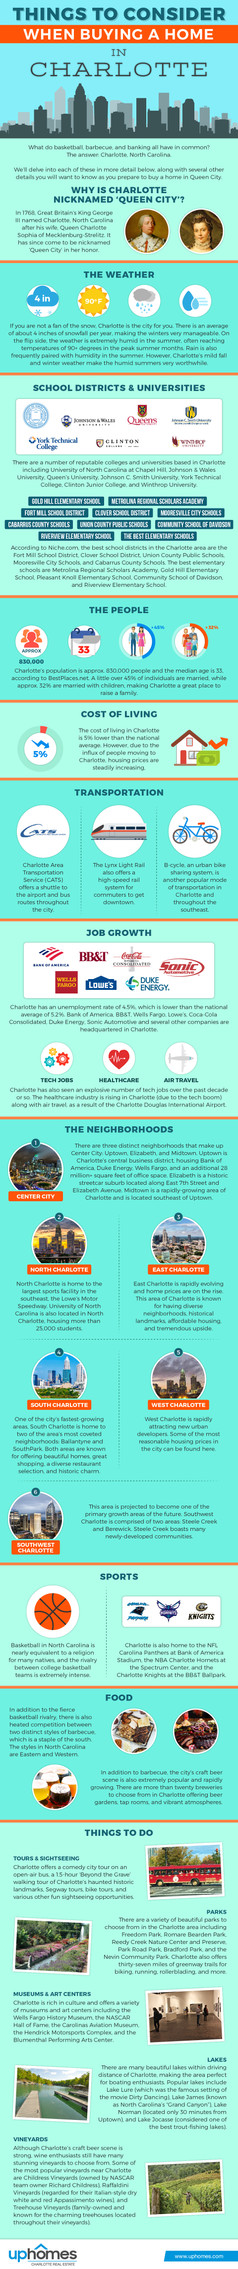 Things to Consider When Buying a Home in Charlotte